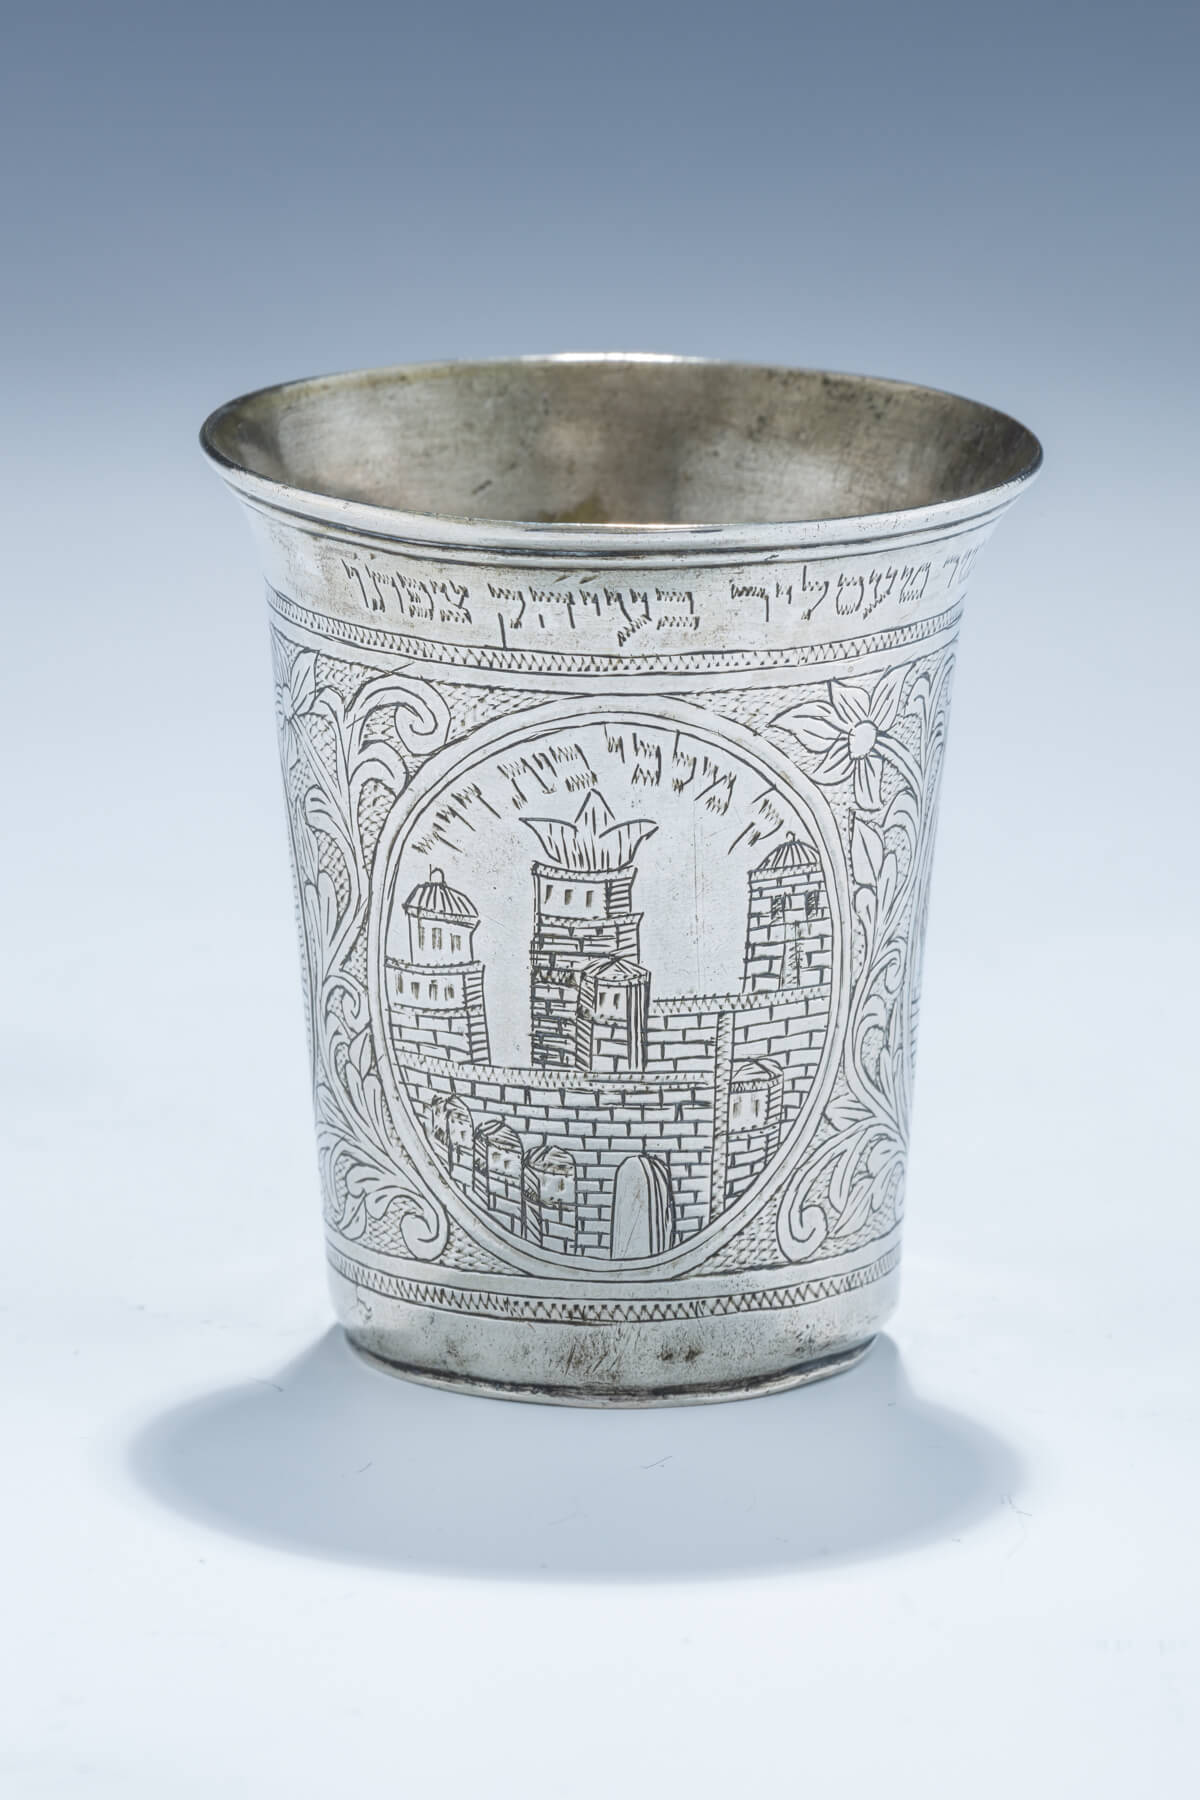 54. An Important Silver Kiddush Cup